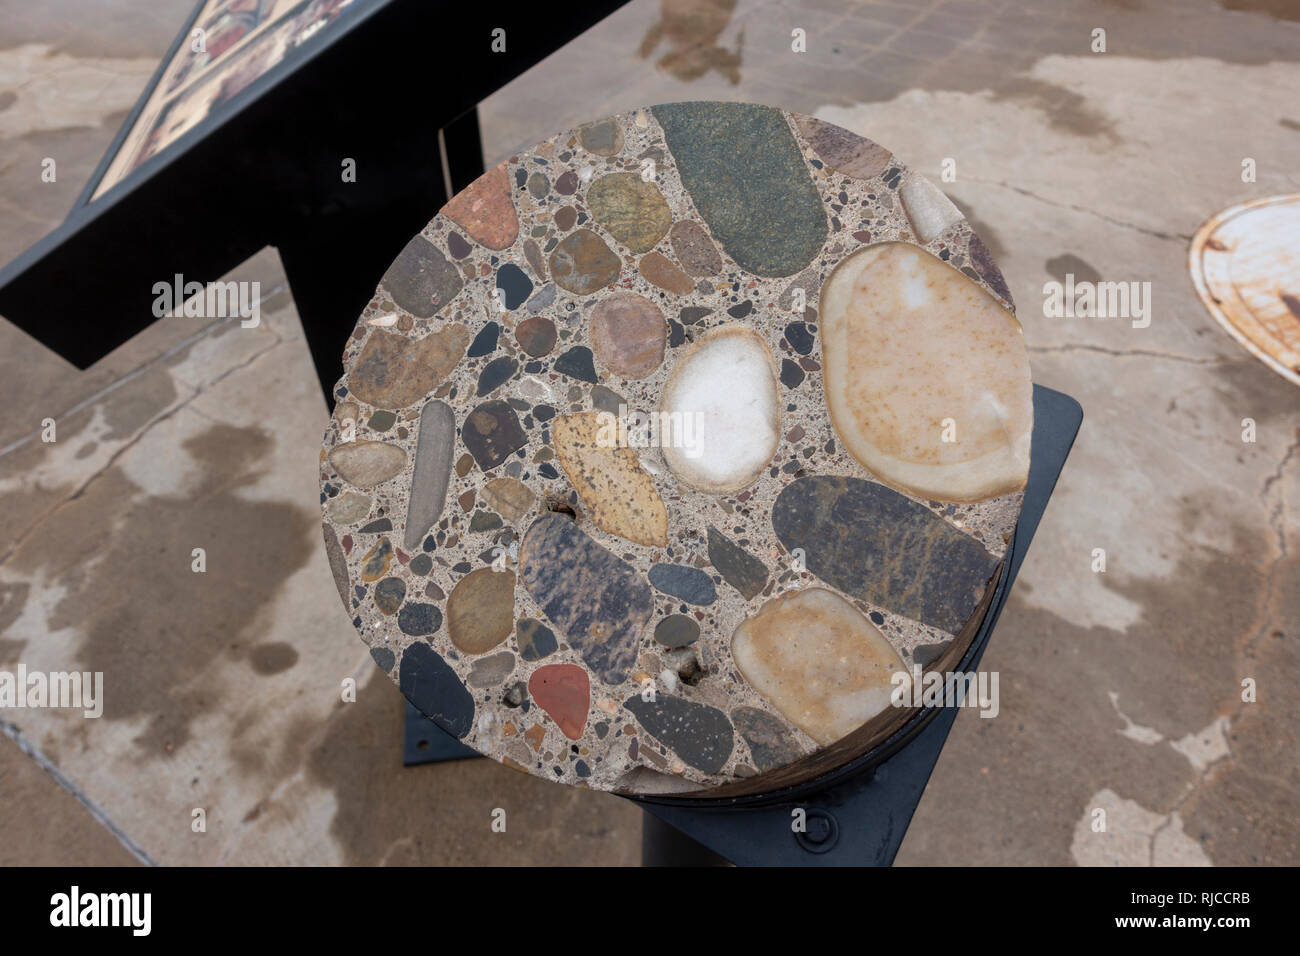 A concrete core sample made during the construction of the Glen Canyon Dam, as seen on the tour, Page, Arizona, United States. - Stock Image